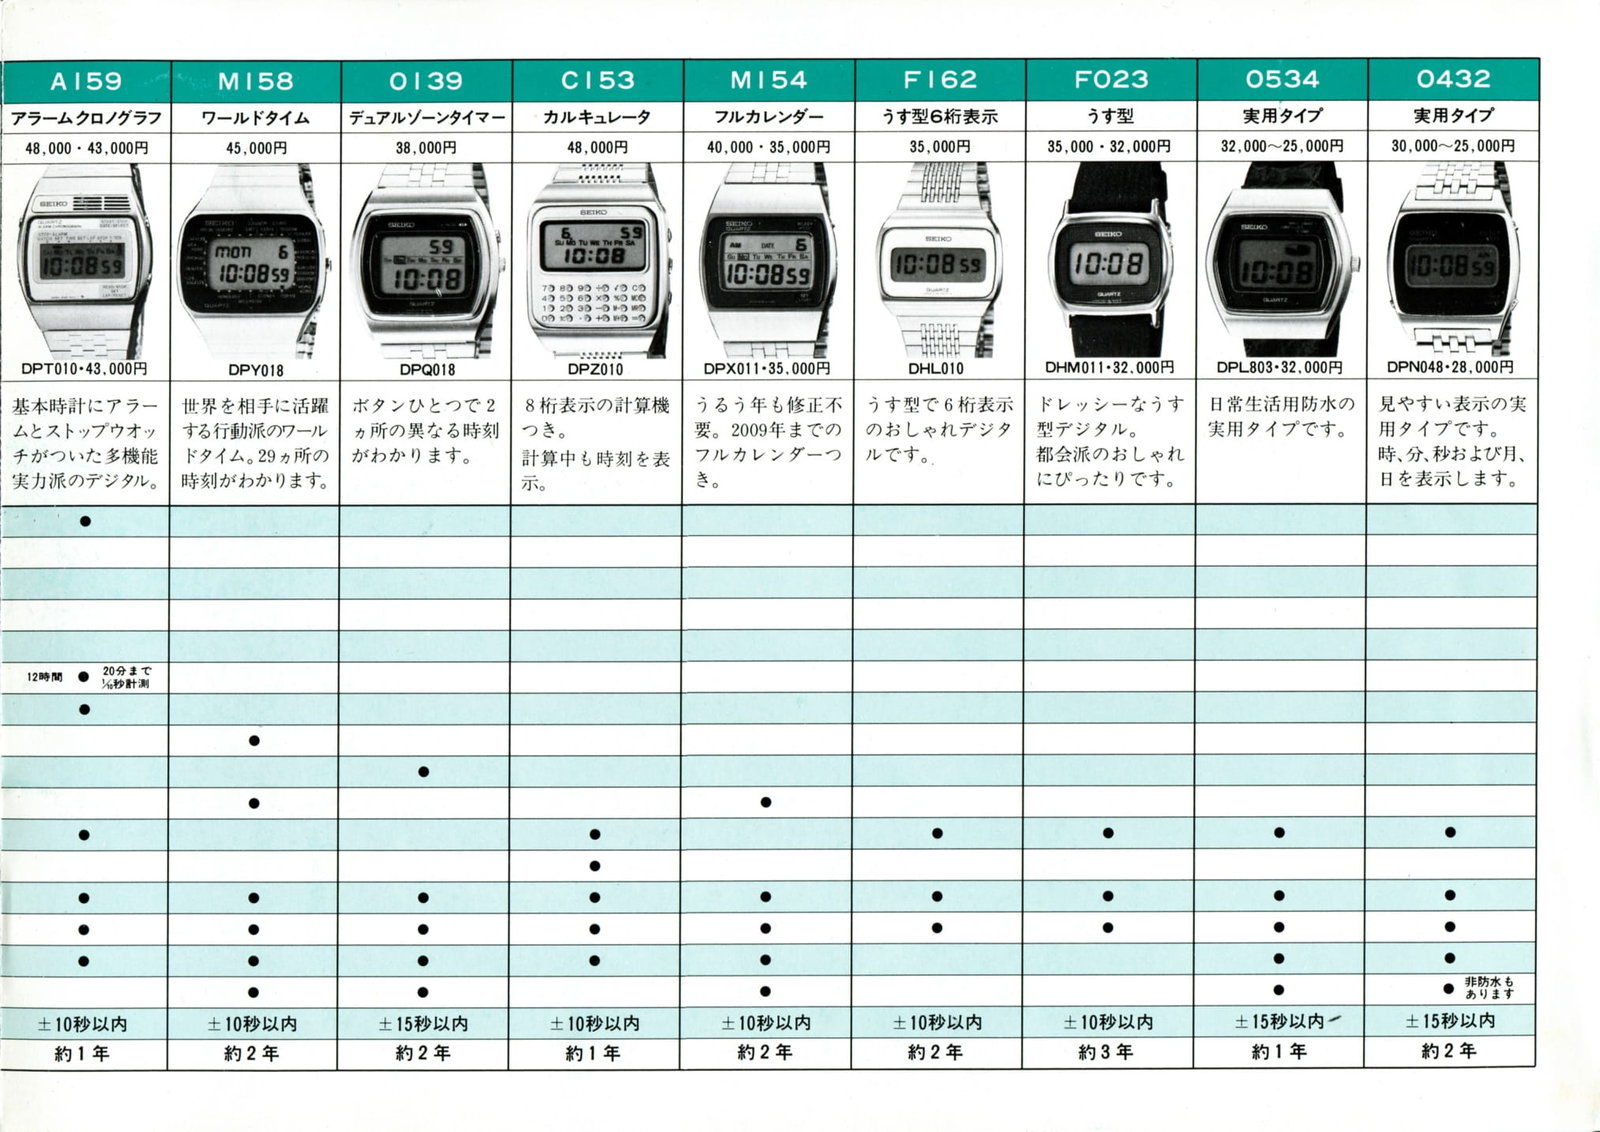 1978.02 Seiko Digital Watch Brochure-3.